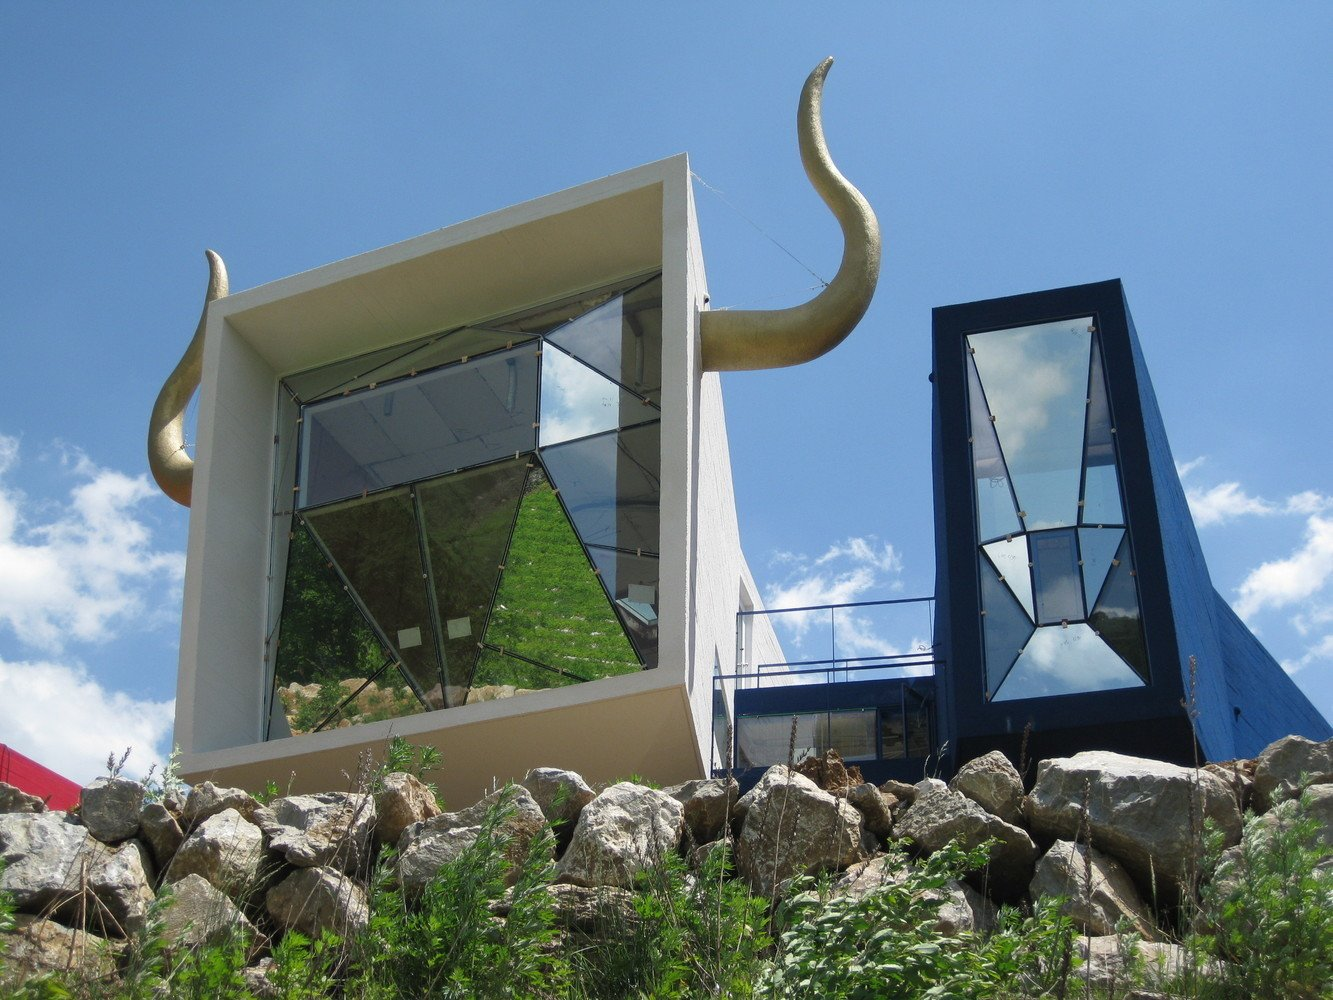 Exterior and House Building Type  Photo 2 of 11 in A Wacky Rock 'n' Roll Wonderland in the South Korean Countryside